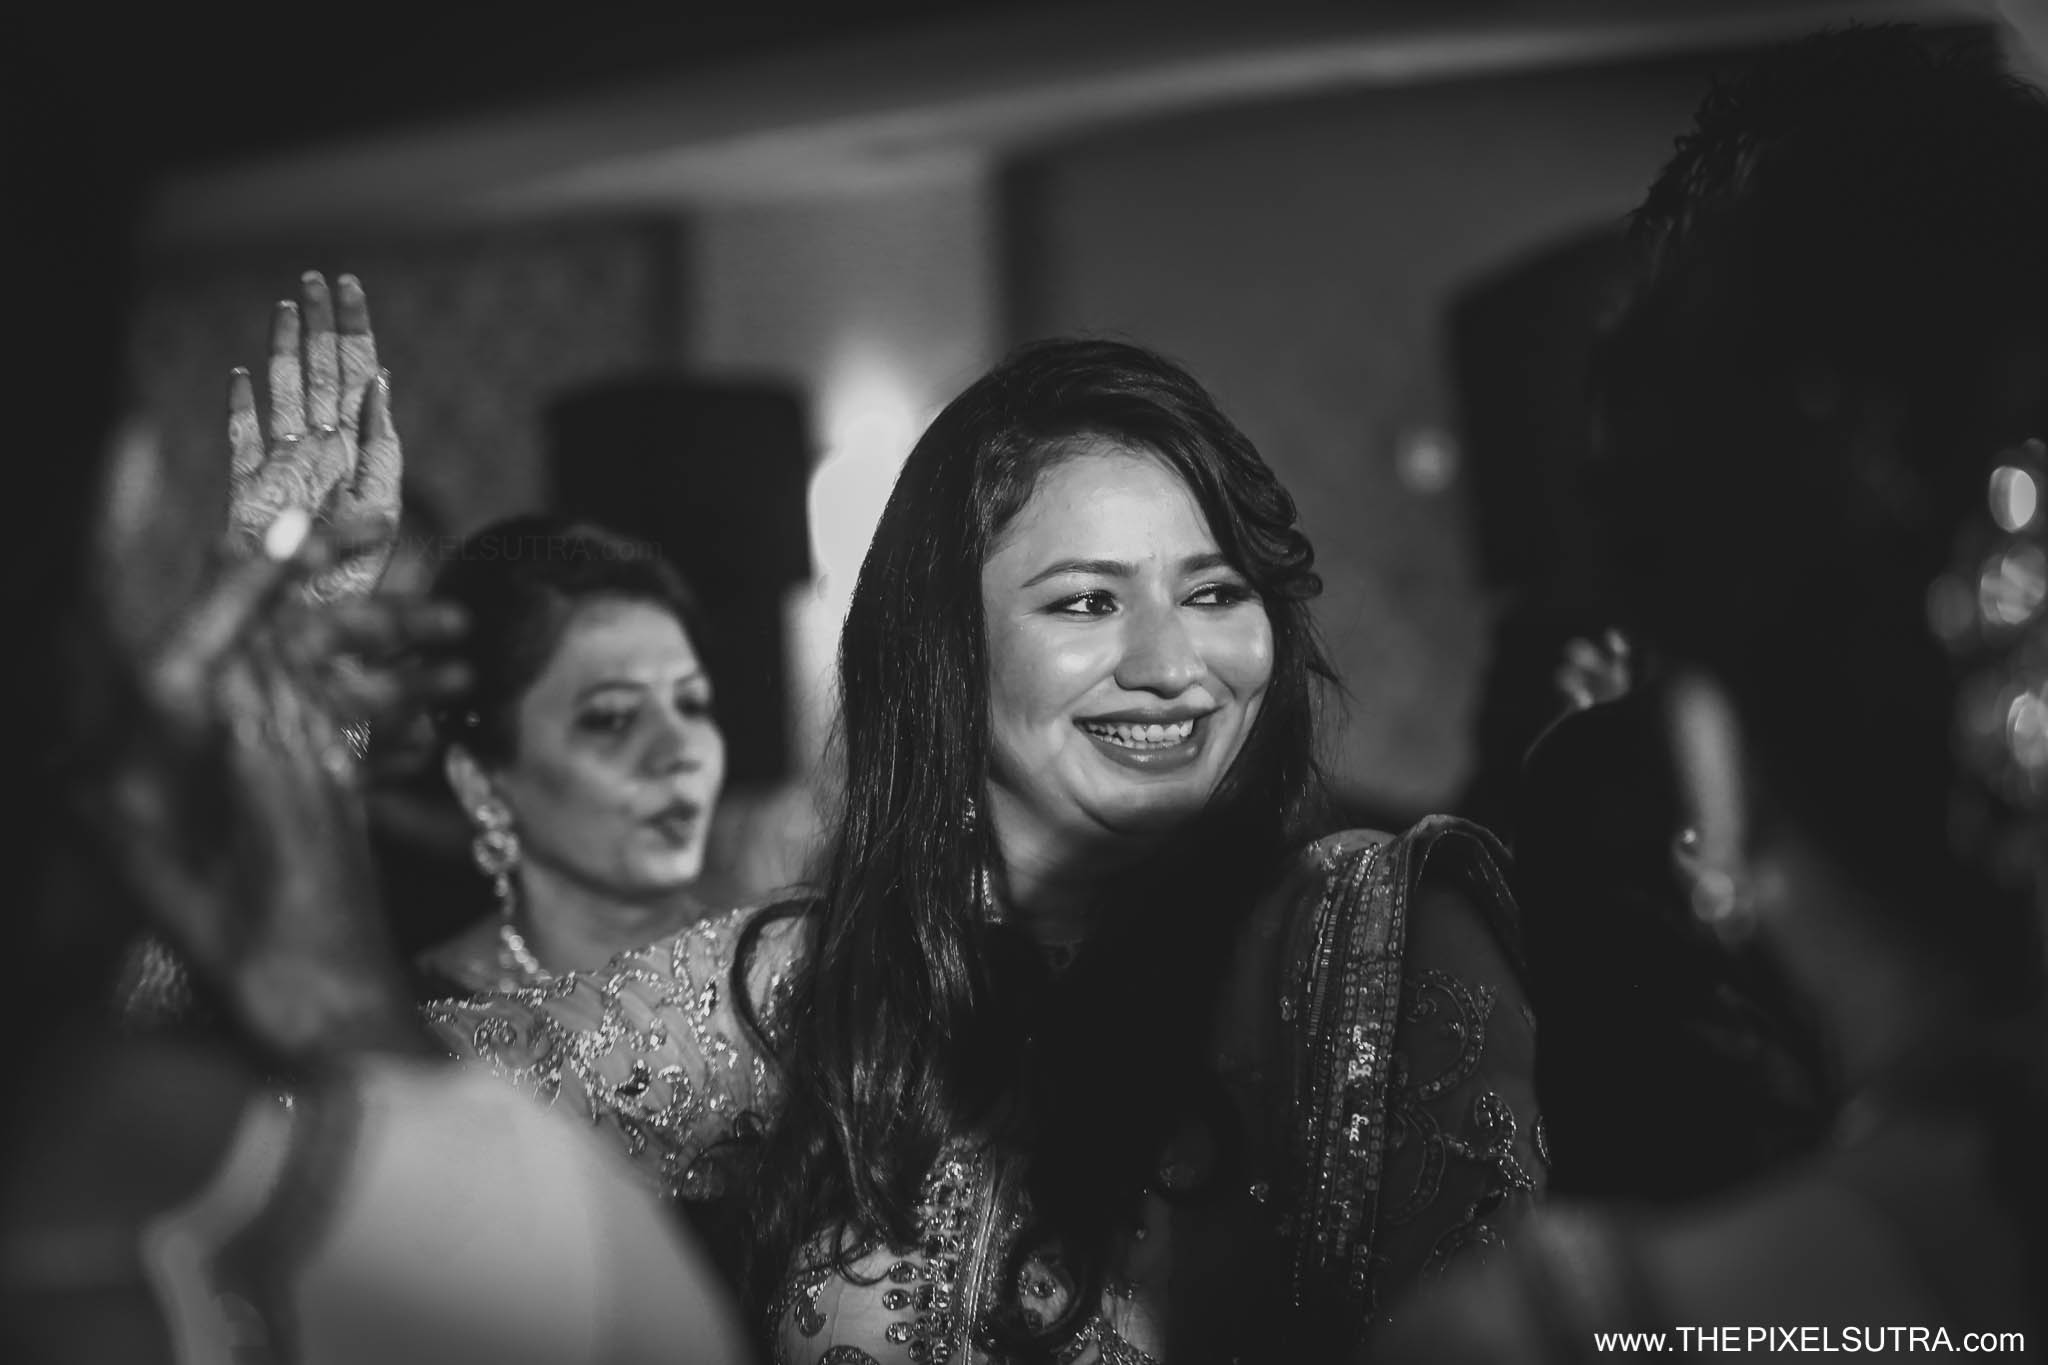 The Pixel Sutra Biral x Shruti Candid Wedding photographer Mumbai Best  (10).jpg